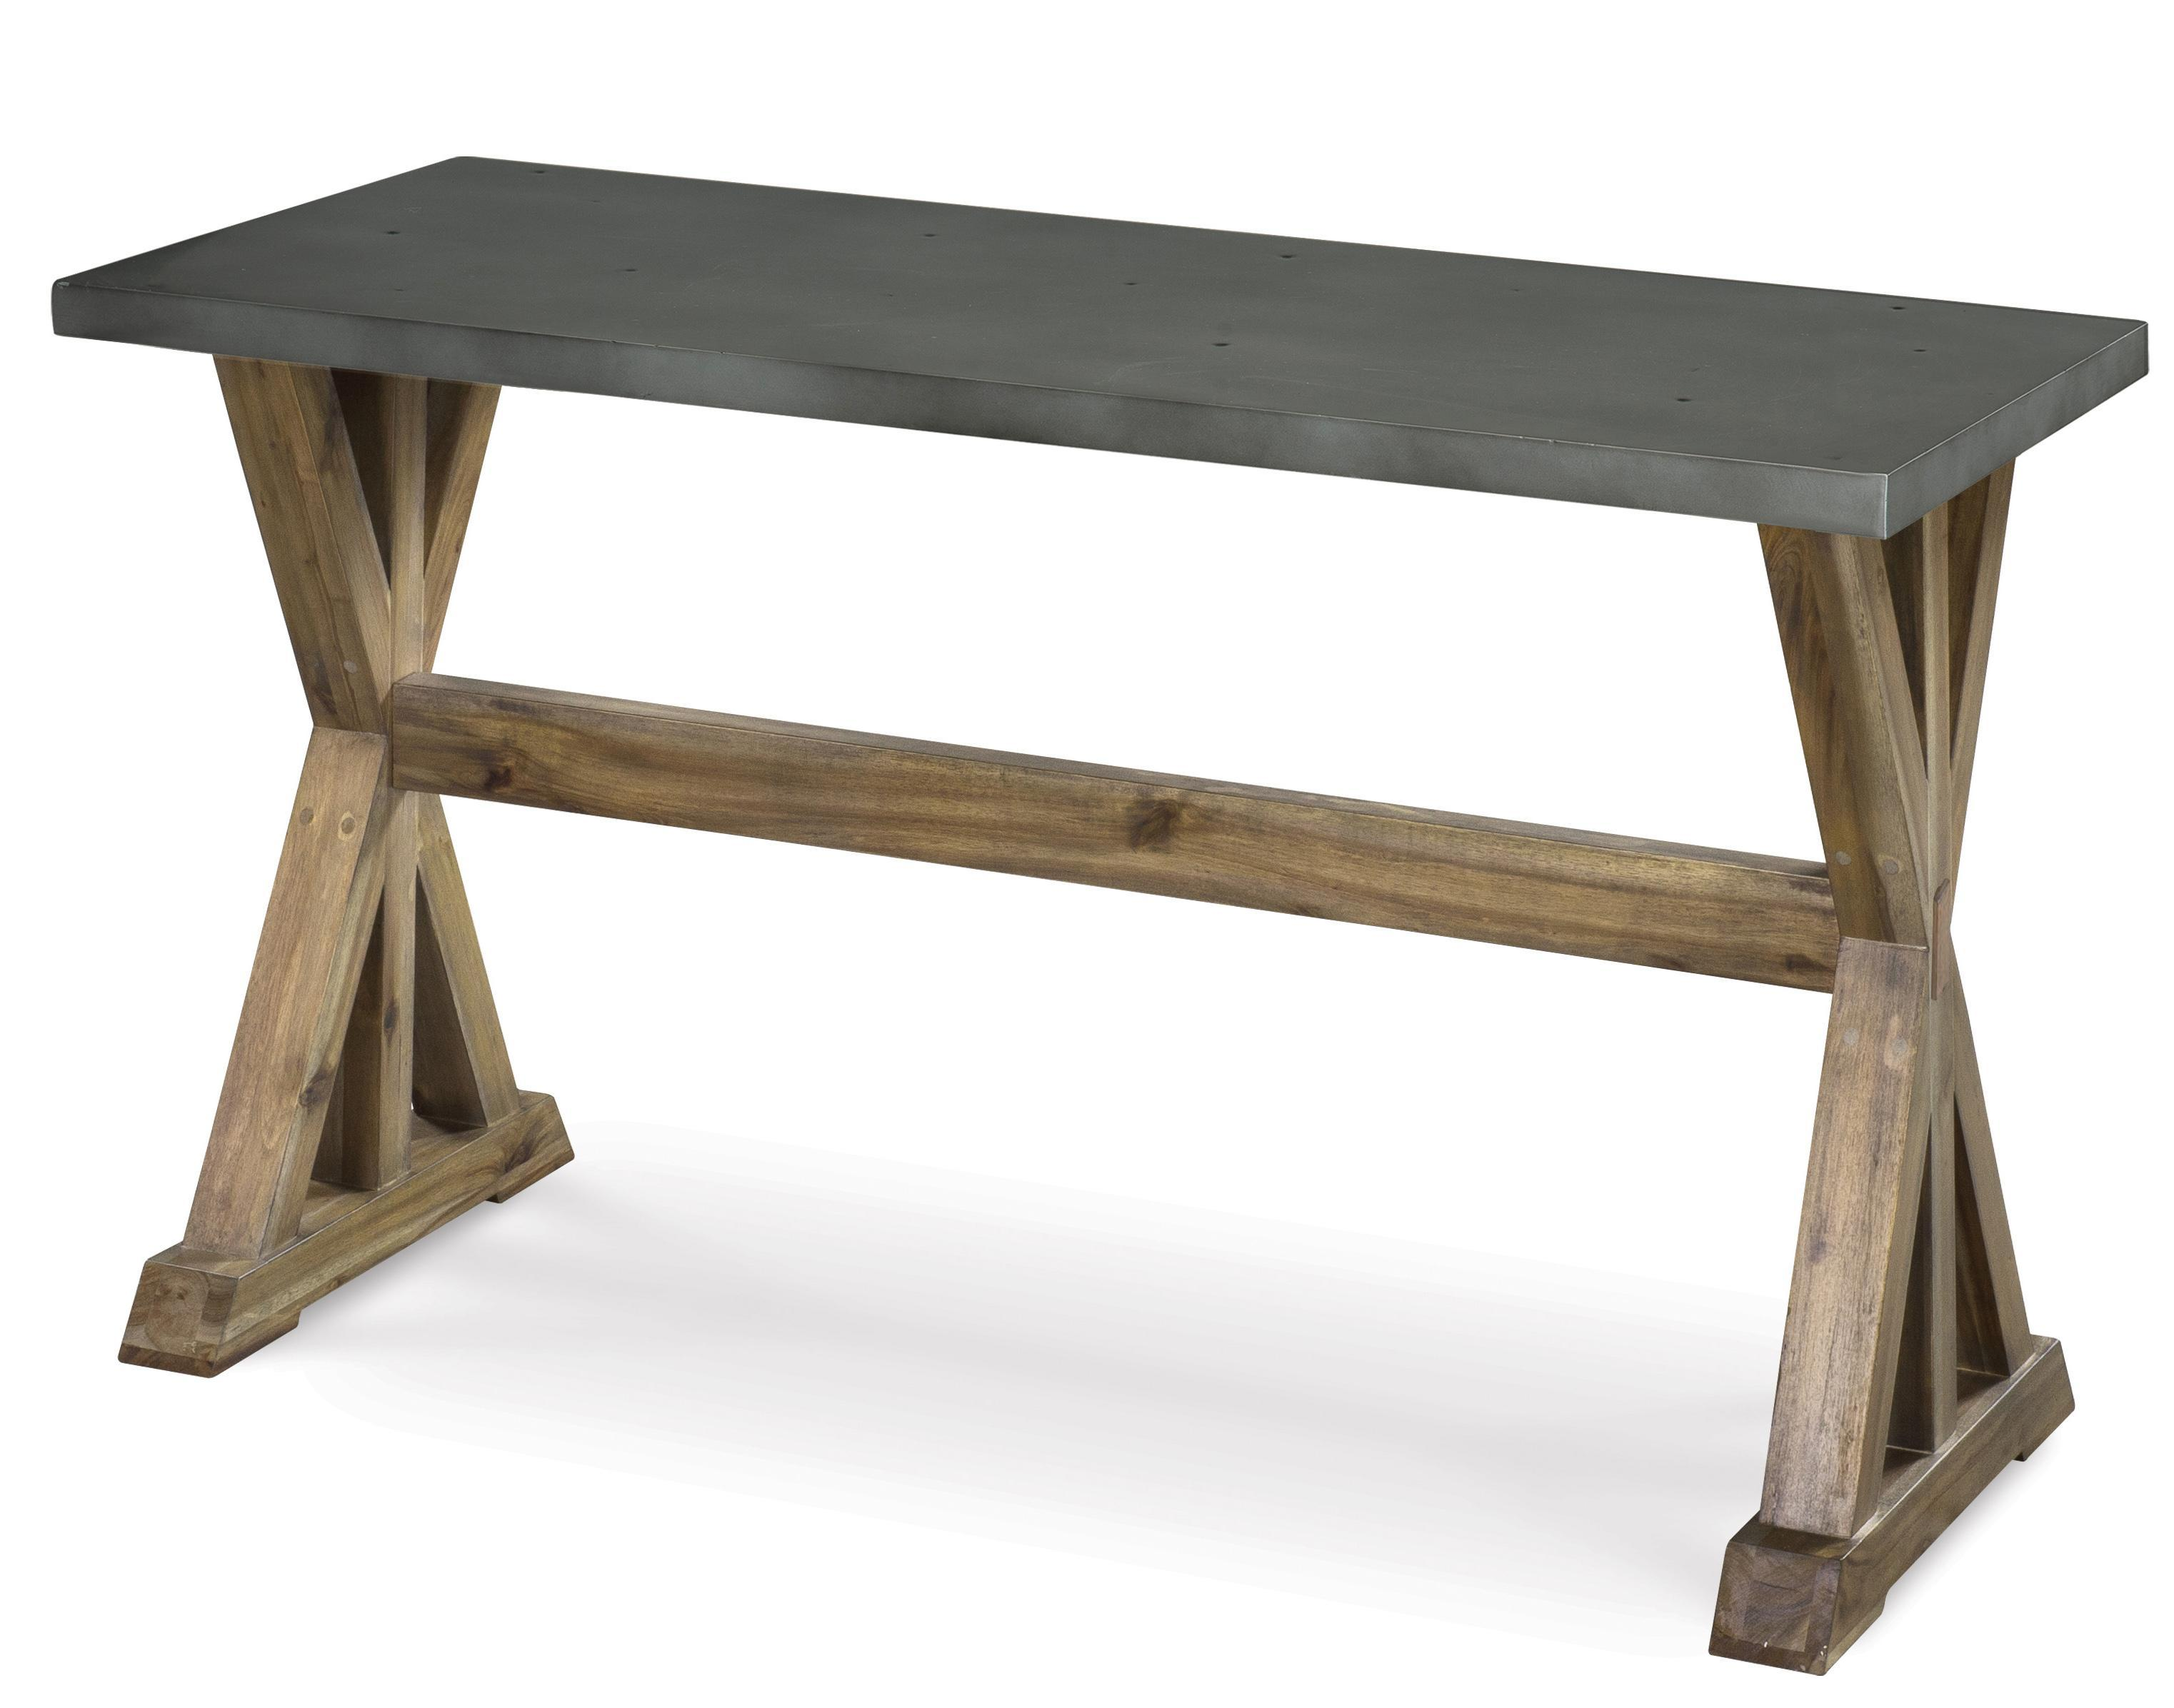 Rectangular Sofa Table with Stone Top and Wooden Trestle Base by